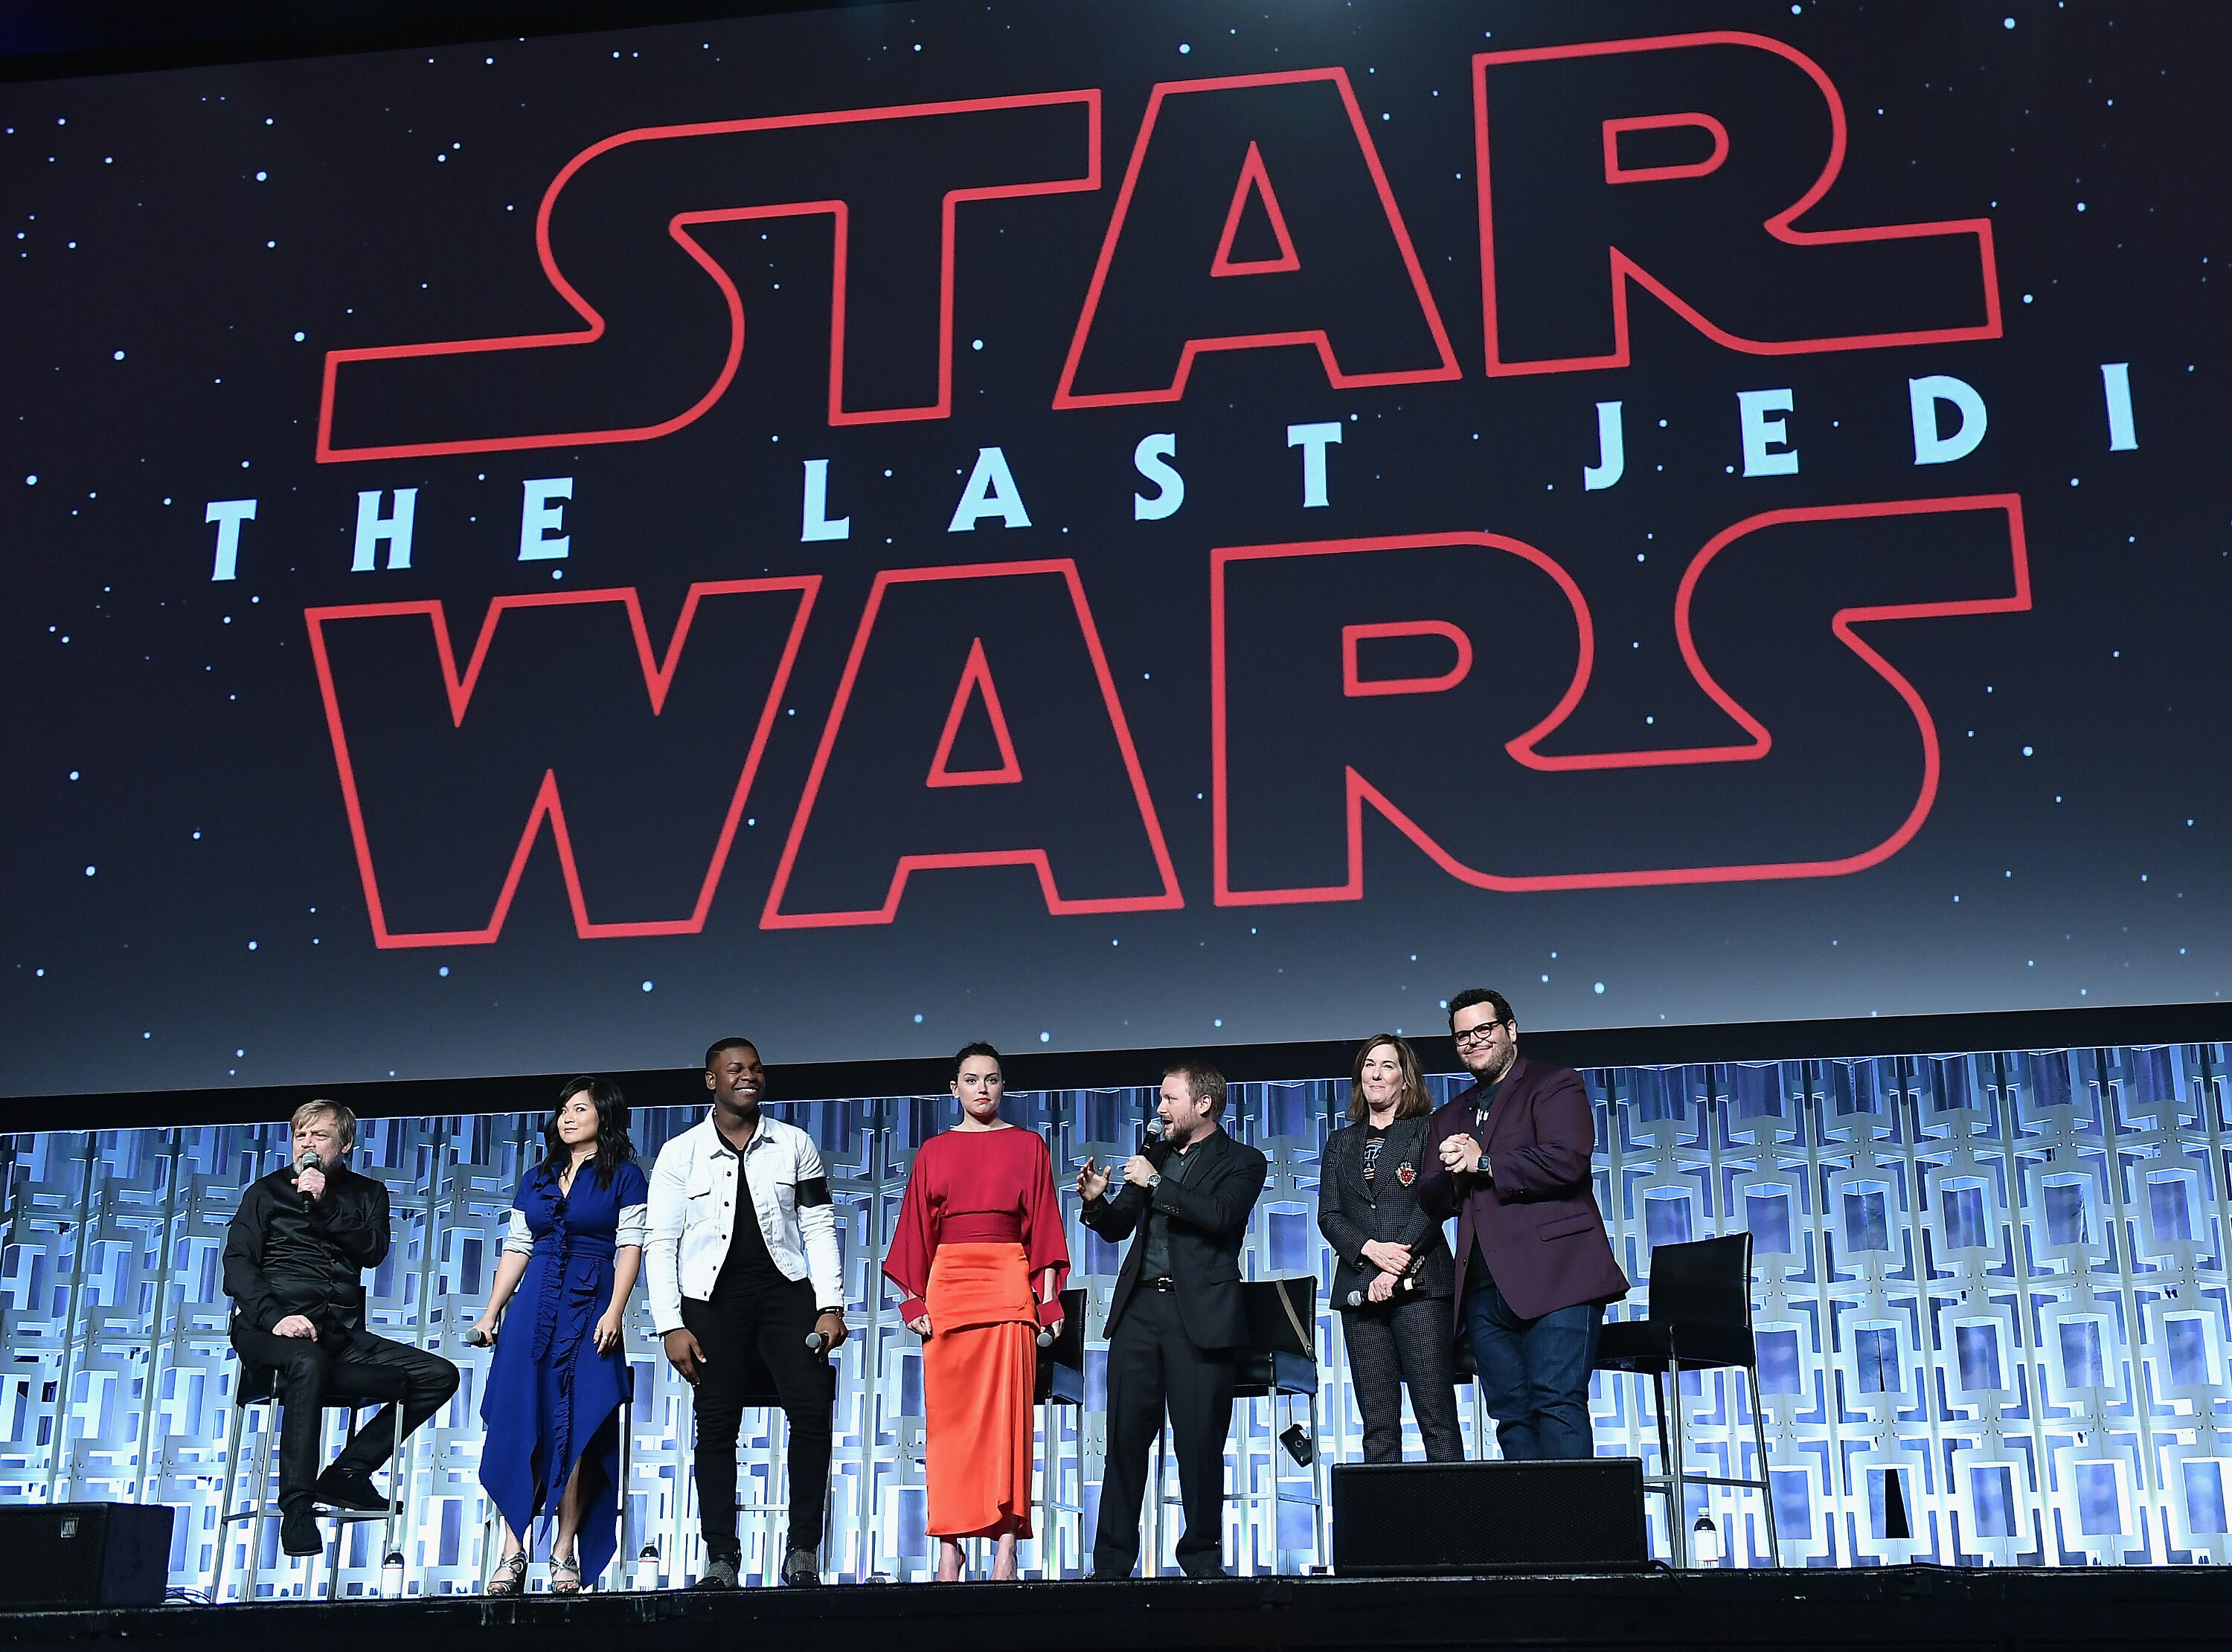 ORLANDO, FL - APRIL 14:  Mark Hamill, Kelly Marie Tran ,John Boyega, Daisy Ridley, Rian Johnson, Kathleen Kennedy and Josh Gad  attends the Star Wars Celebration day 02  on April 14, 2017 in Orlando, Florida.  (Photo by Gustavo Caballero/Getty Images)